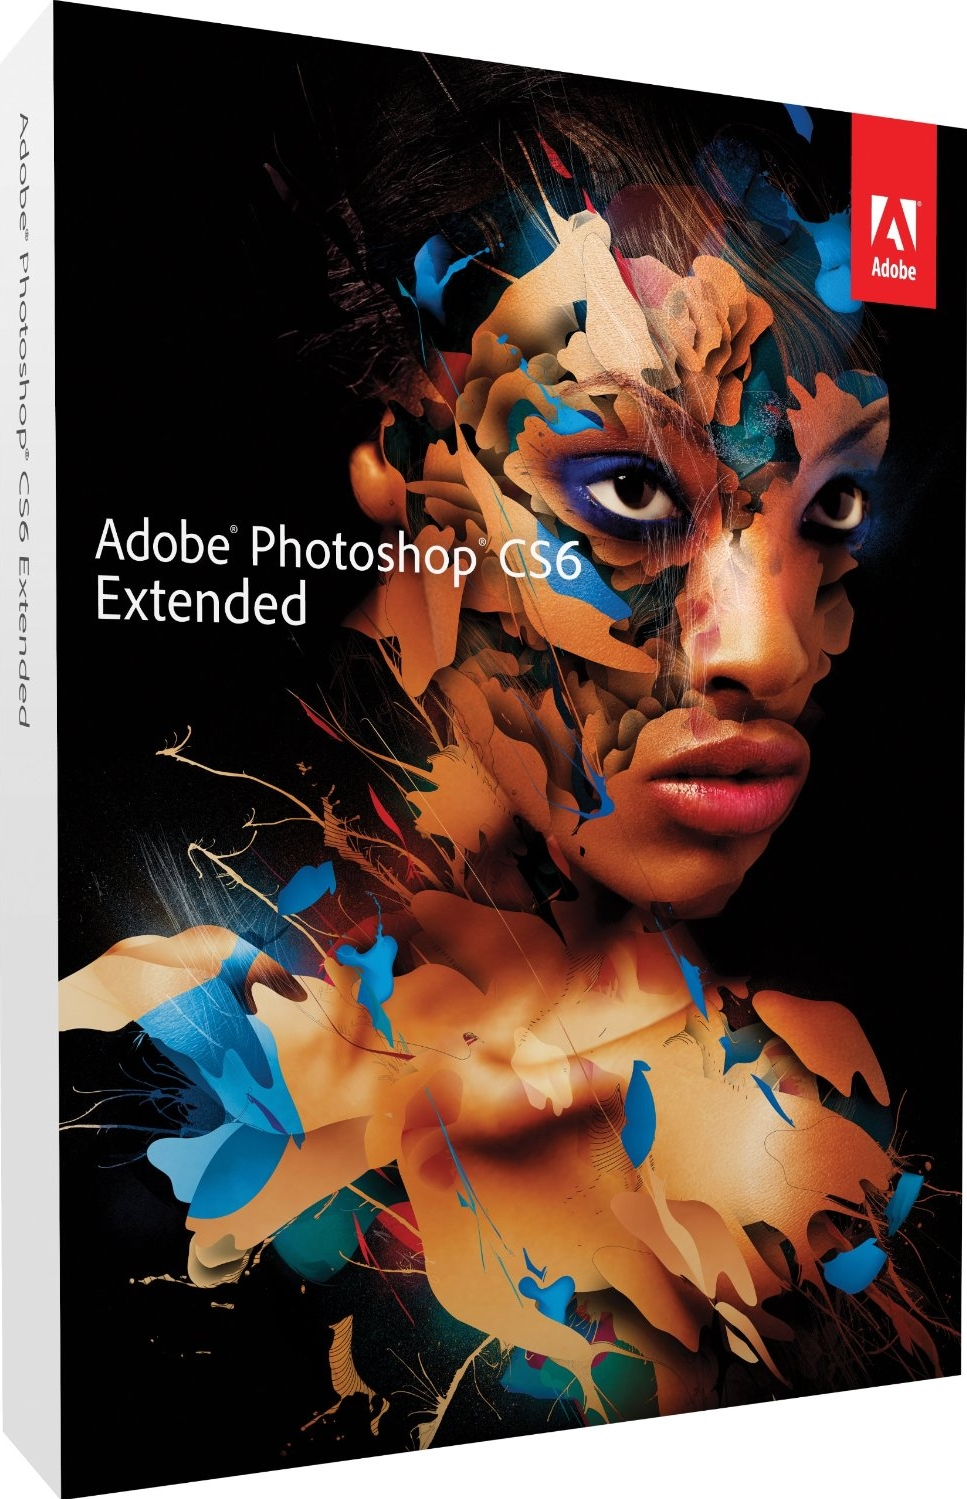 Photoshop Cs6 Extended Torrent